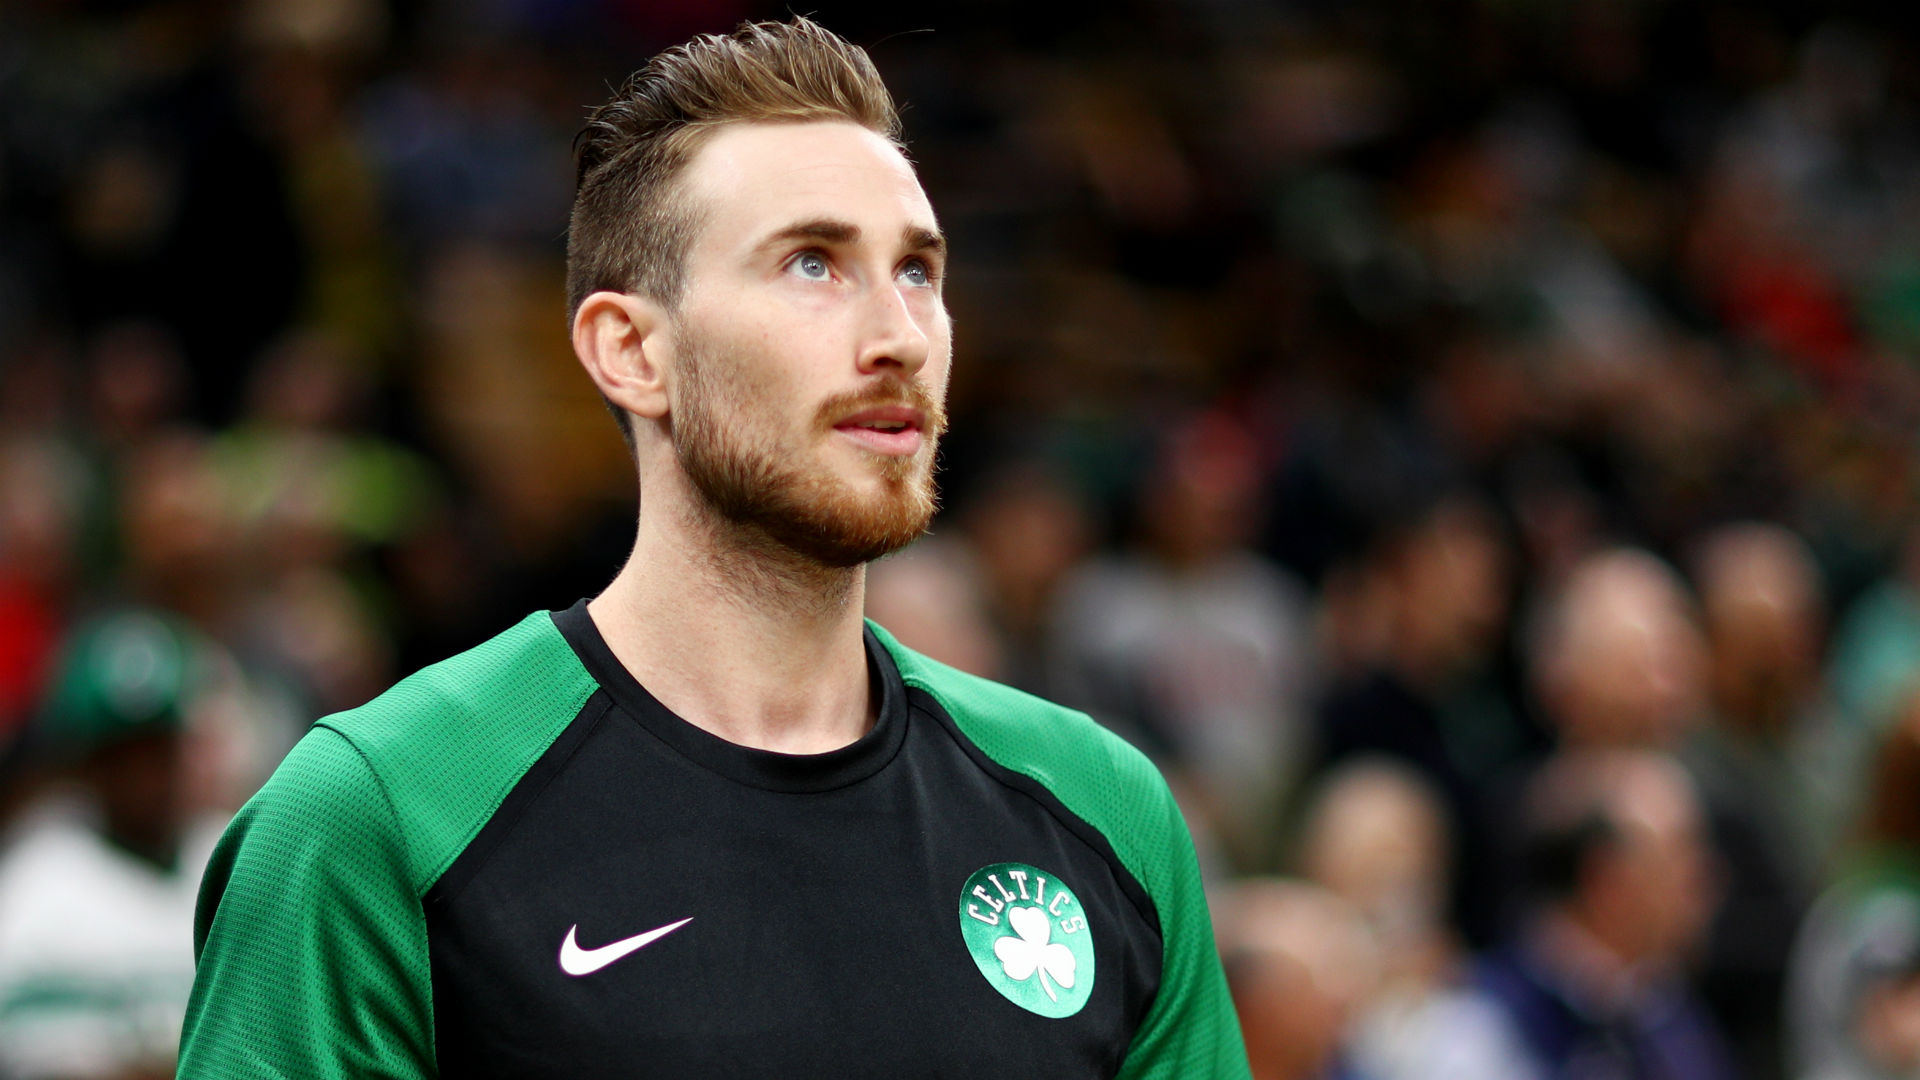 Gordon Hayward sends message to Jazz fans ahead of Utah return